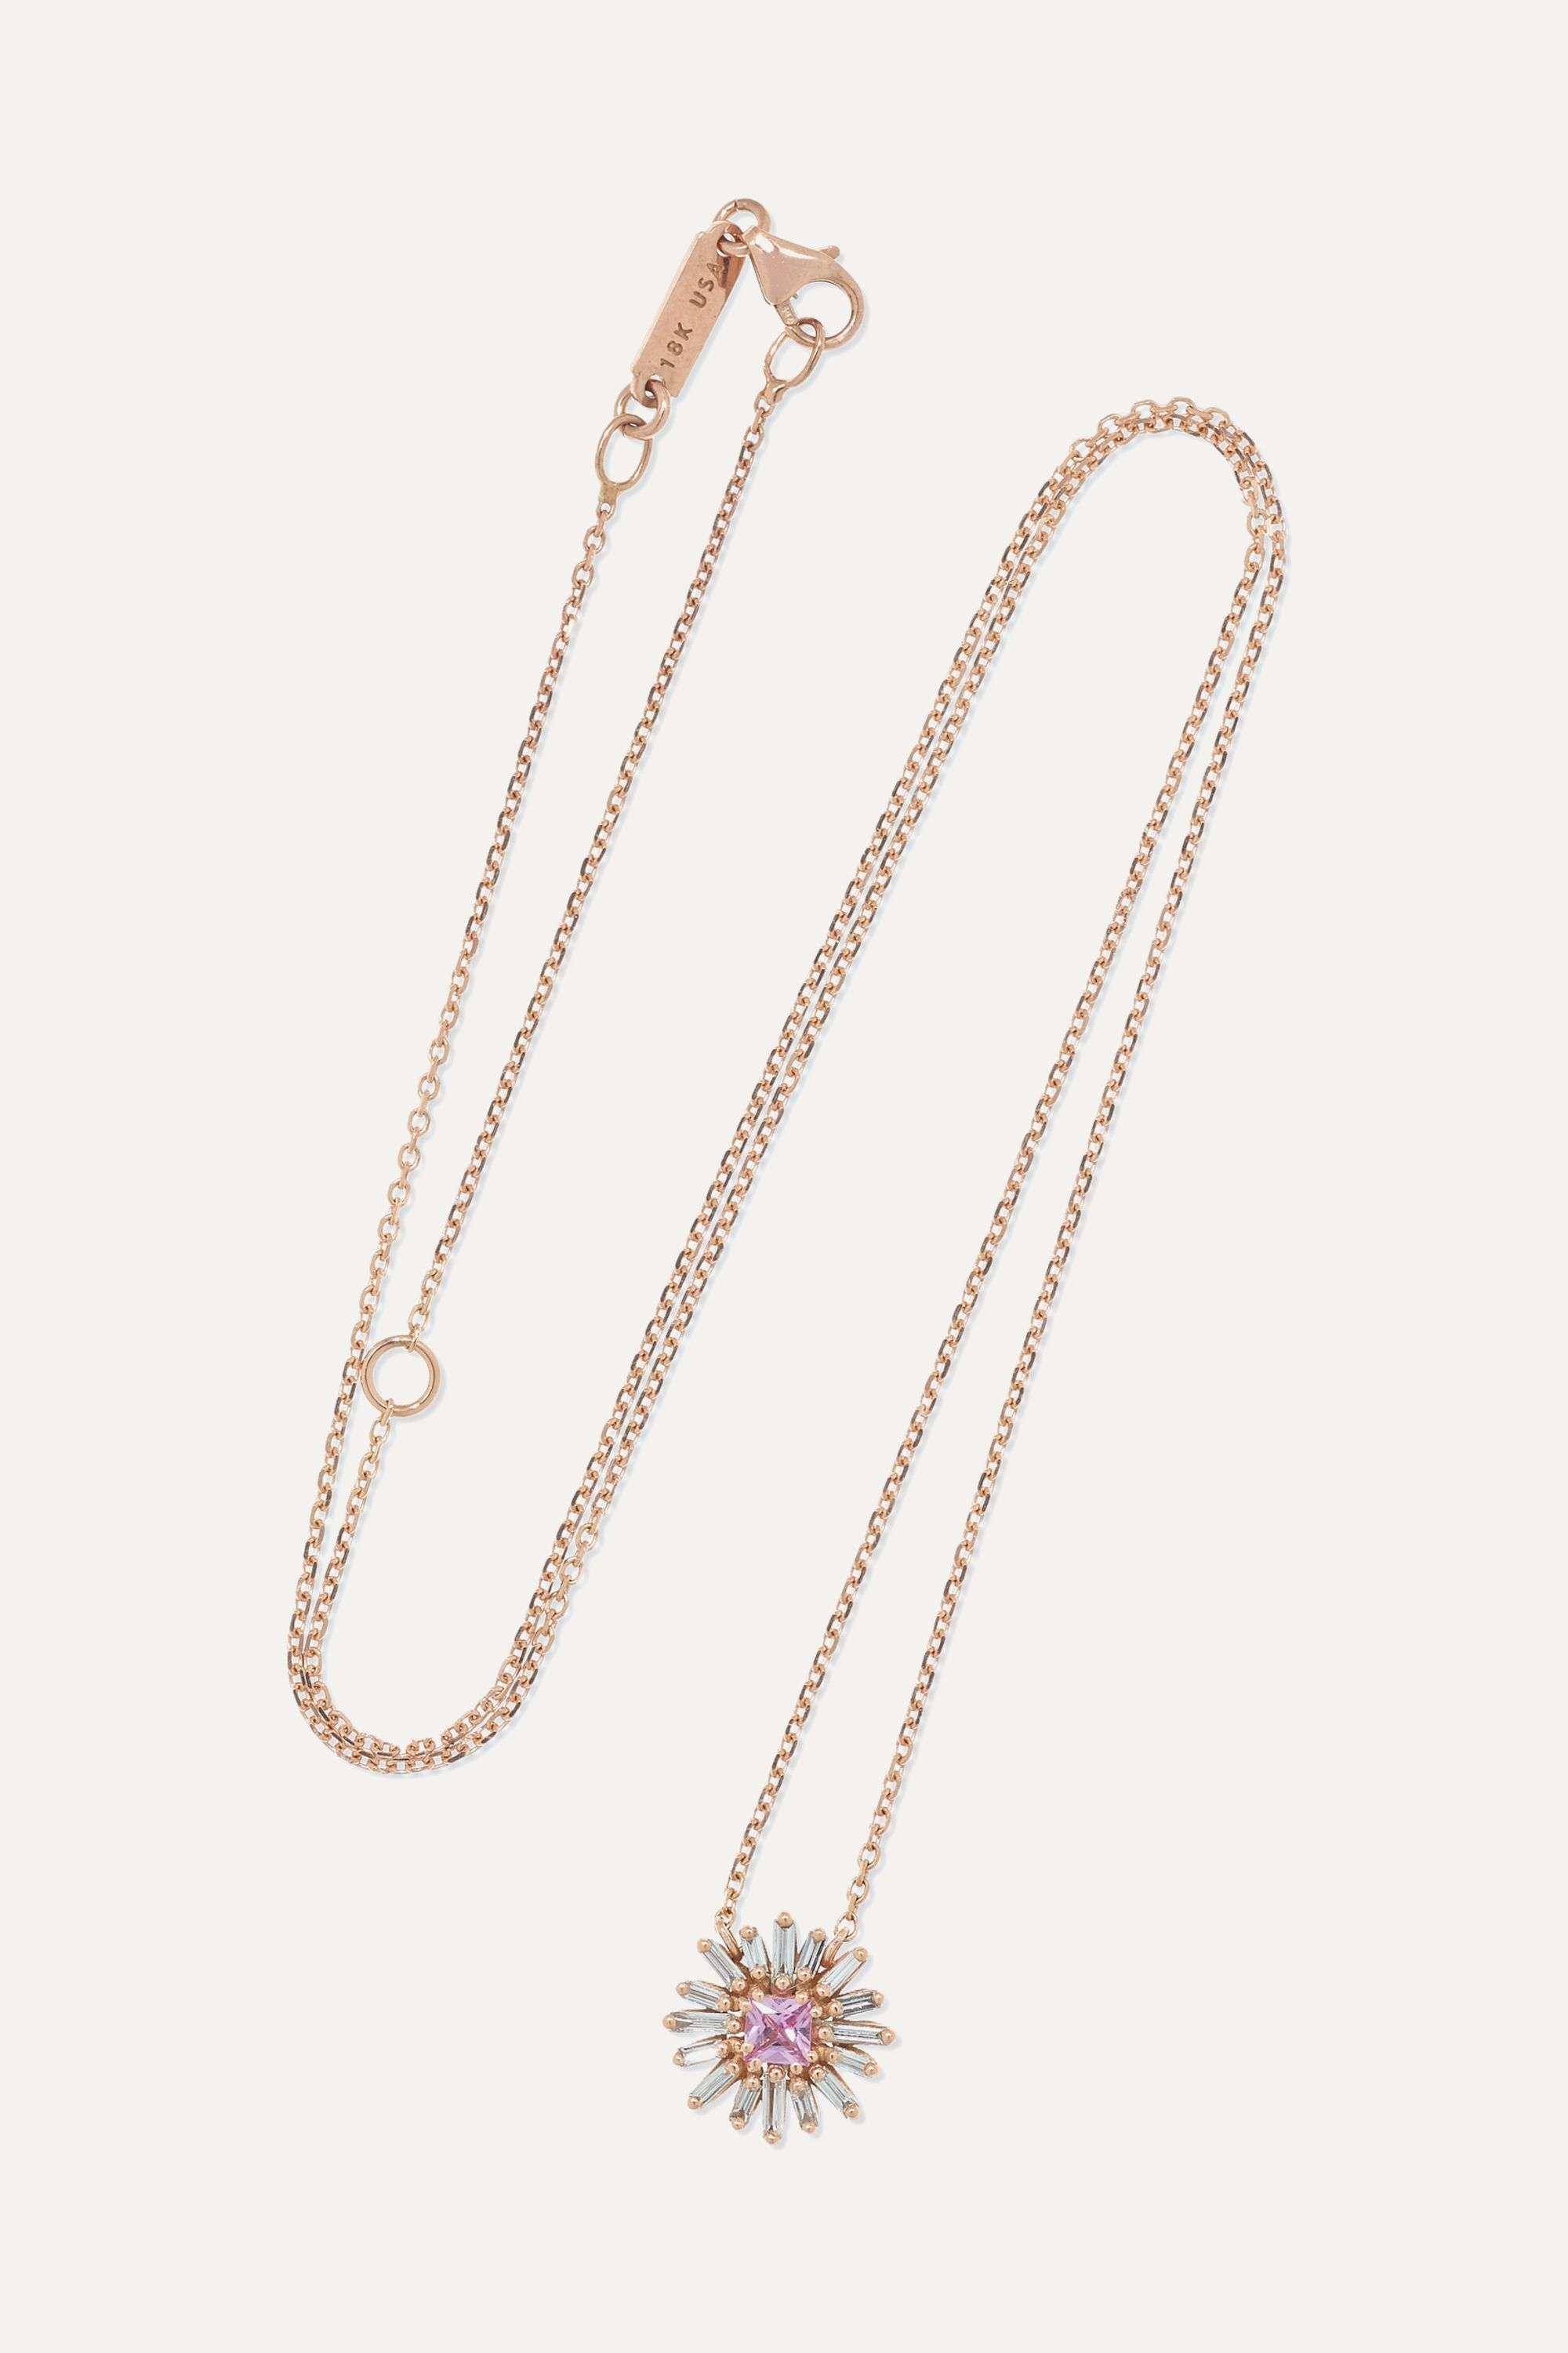 Suzanne Kalan 18-karat rose gold, diamond and sapphire necklace